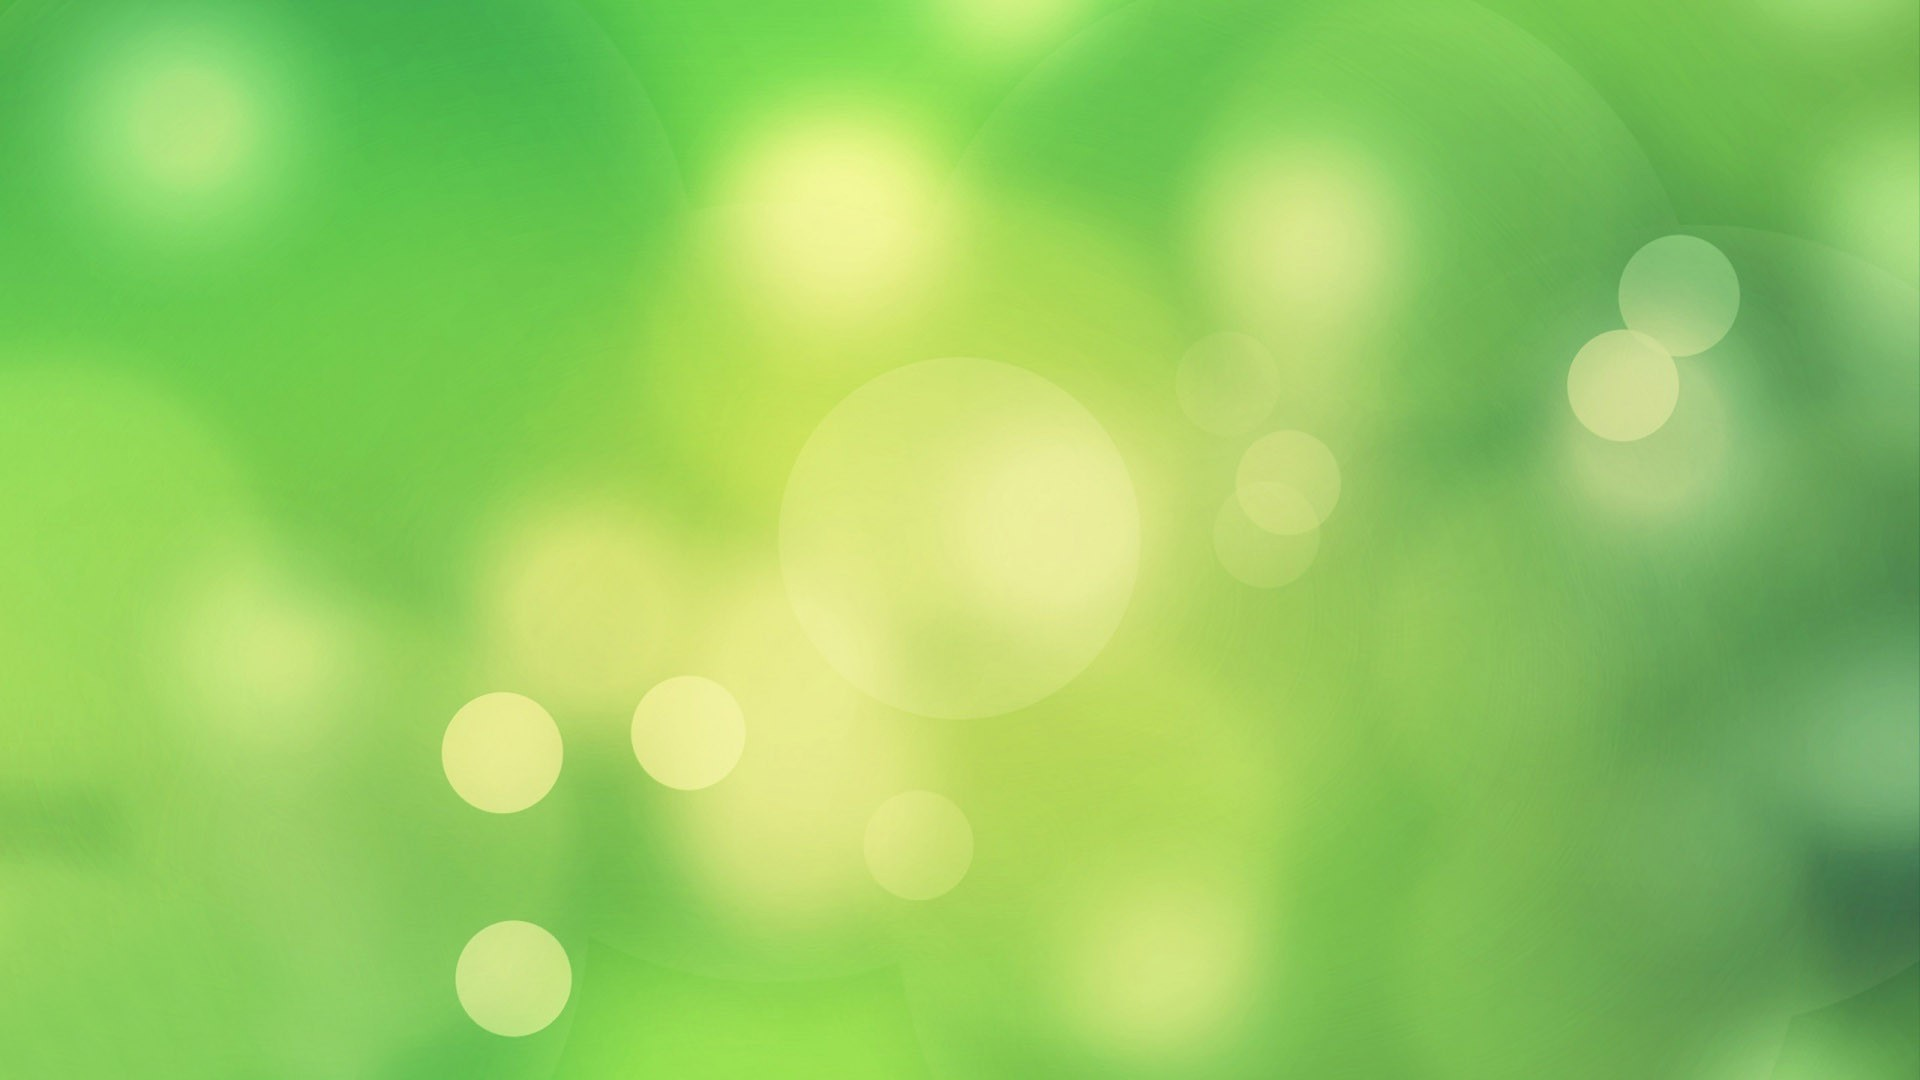 Green-Background-Wallpaper-in-Bubble-Wallpaper